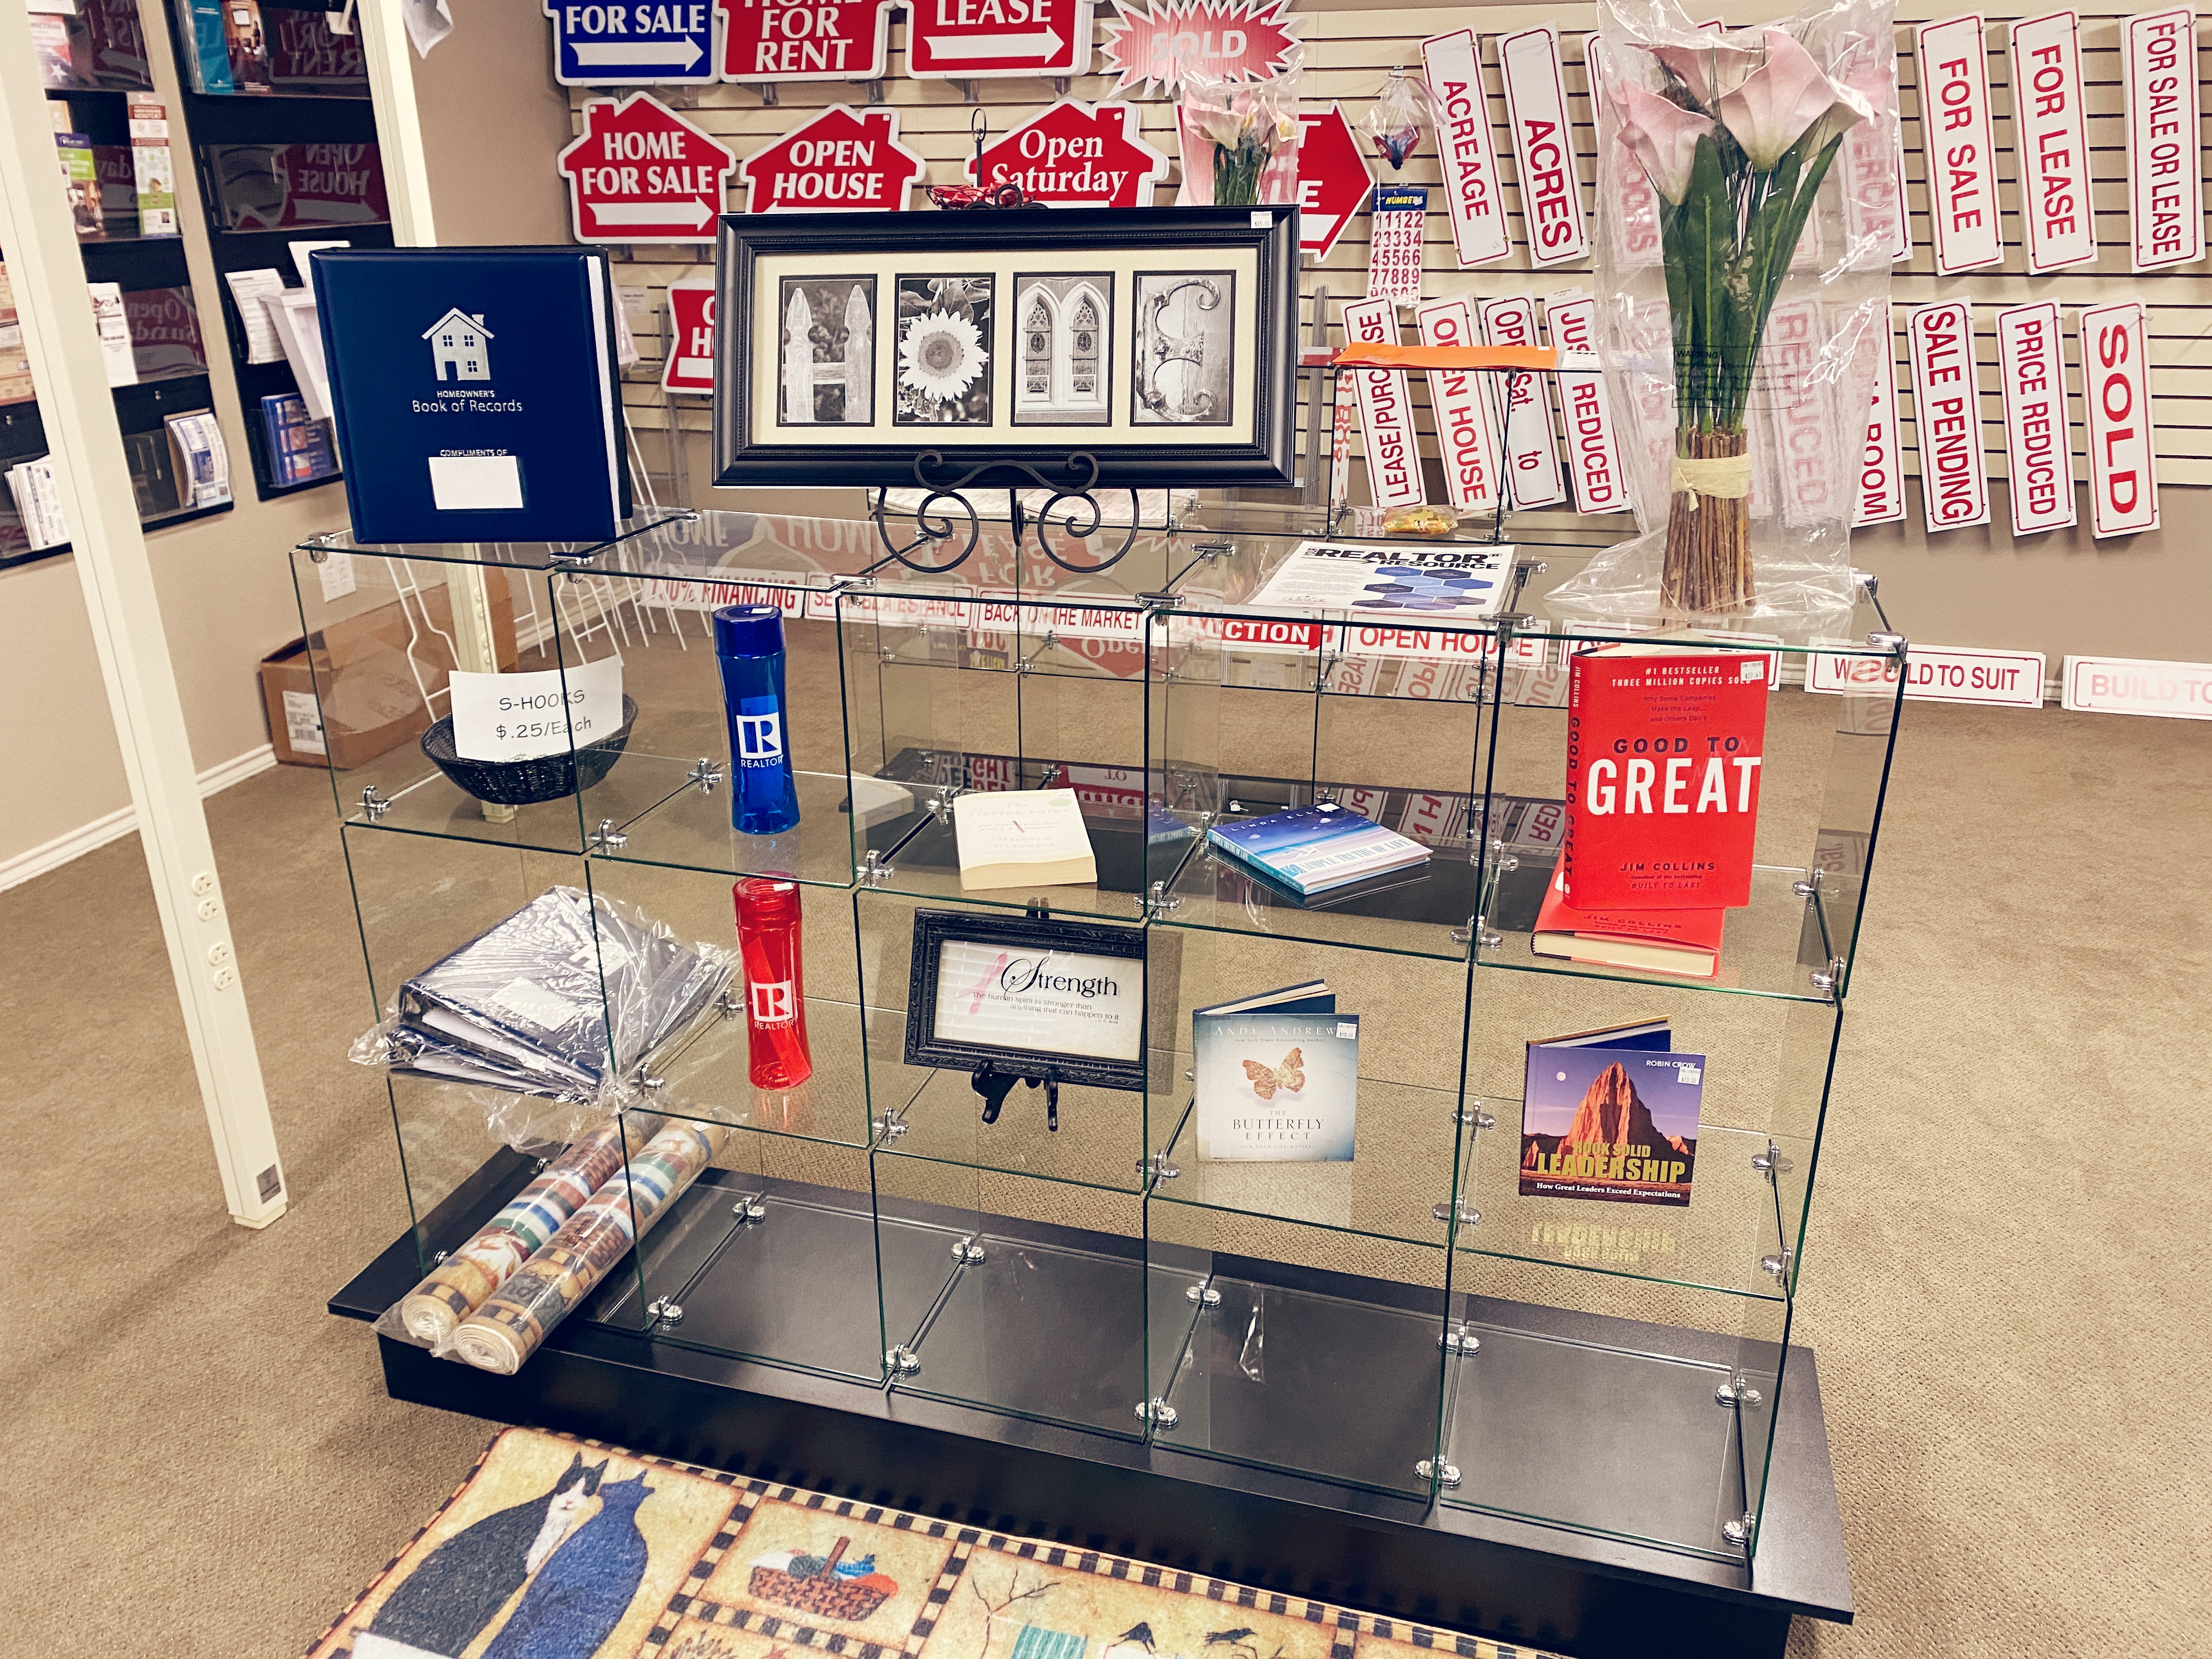 REALTOR Store Items